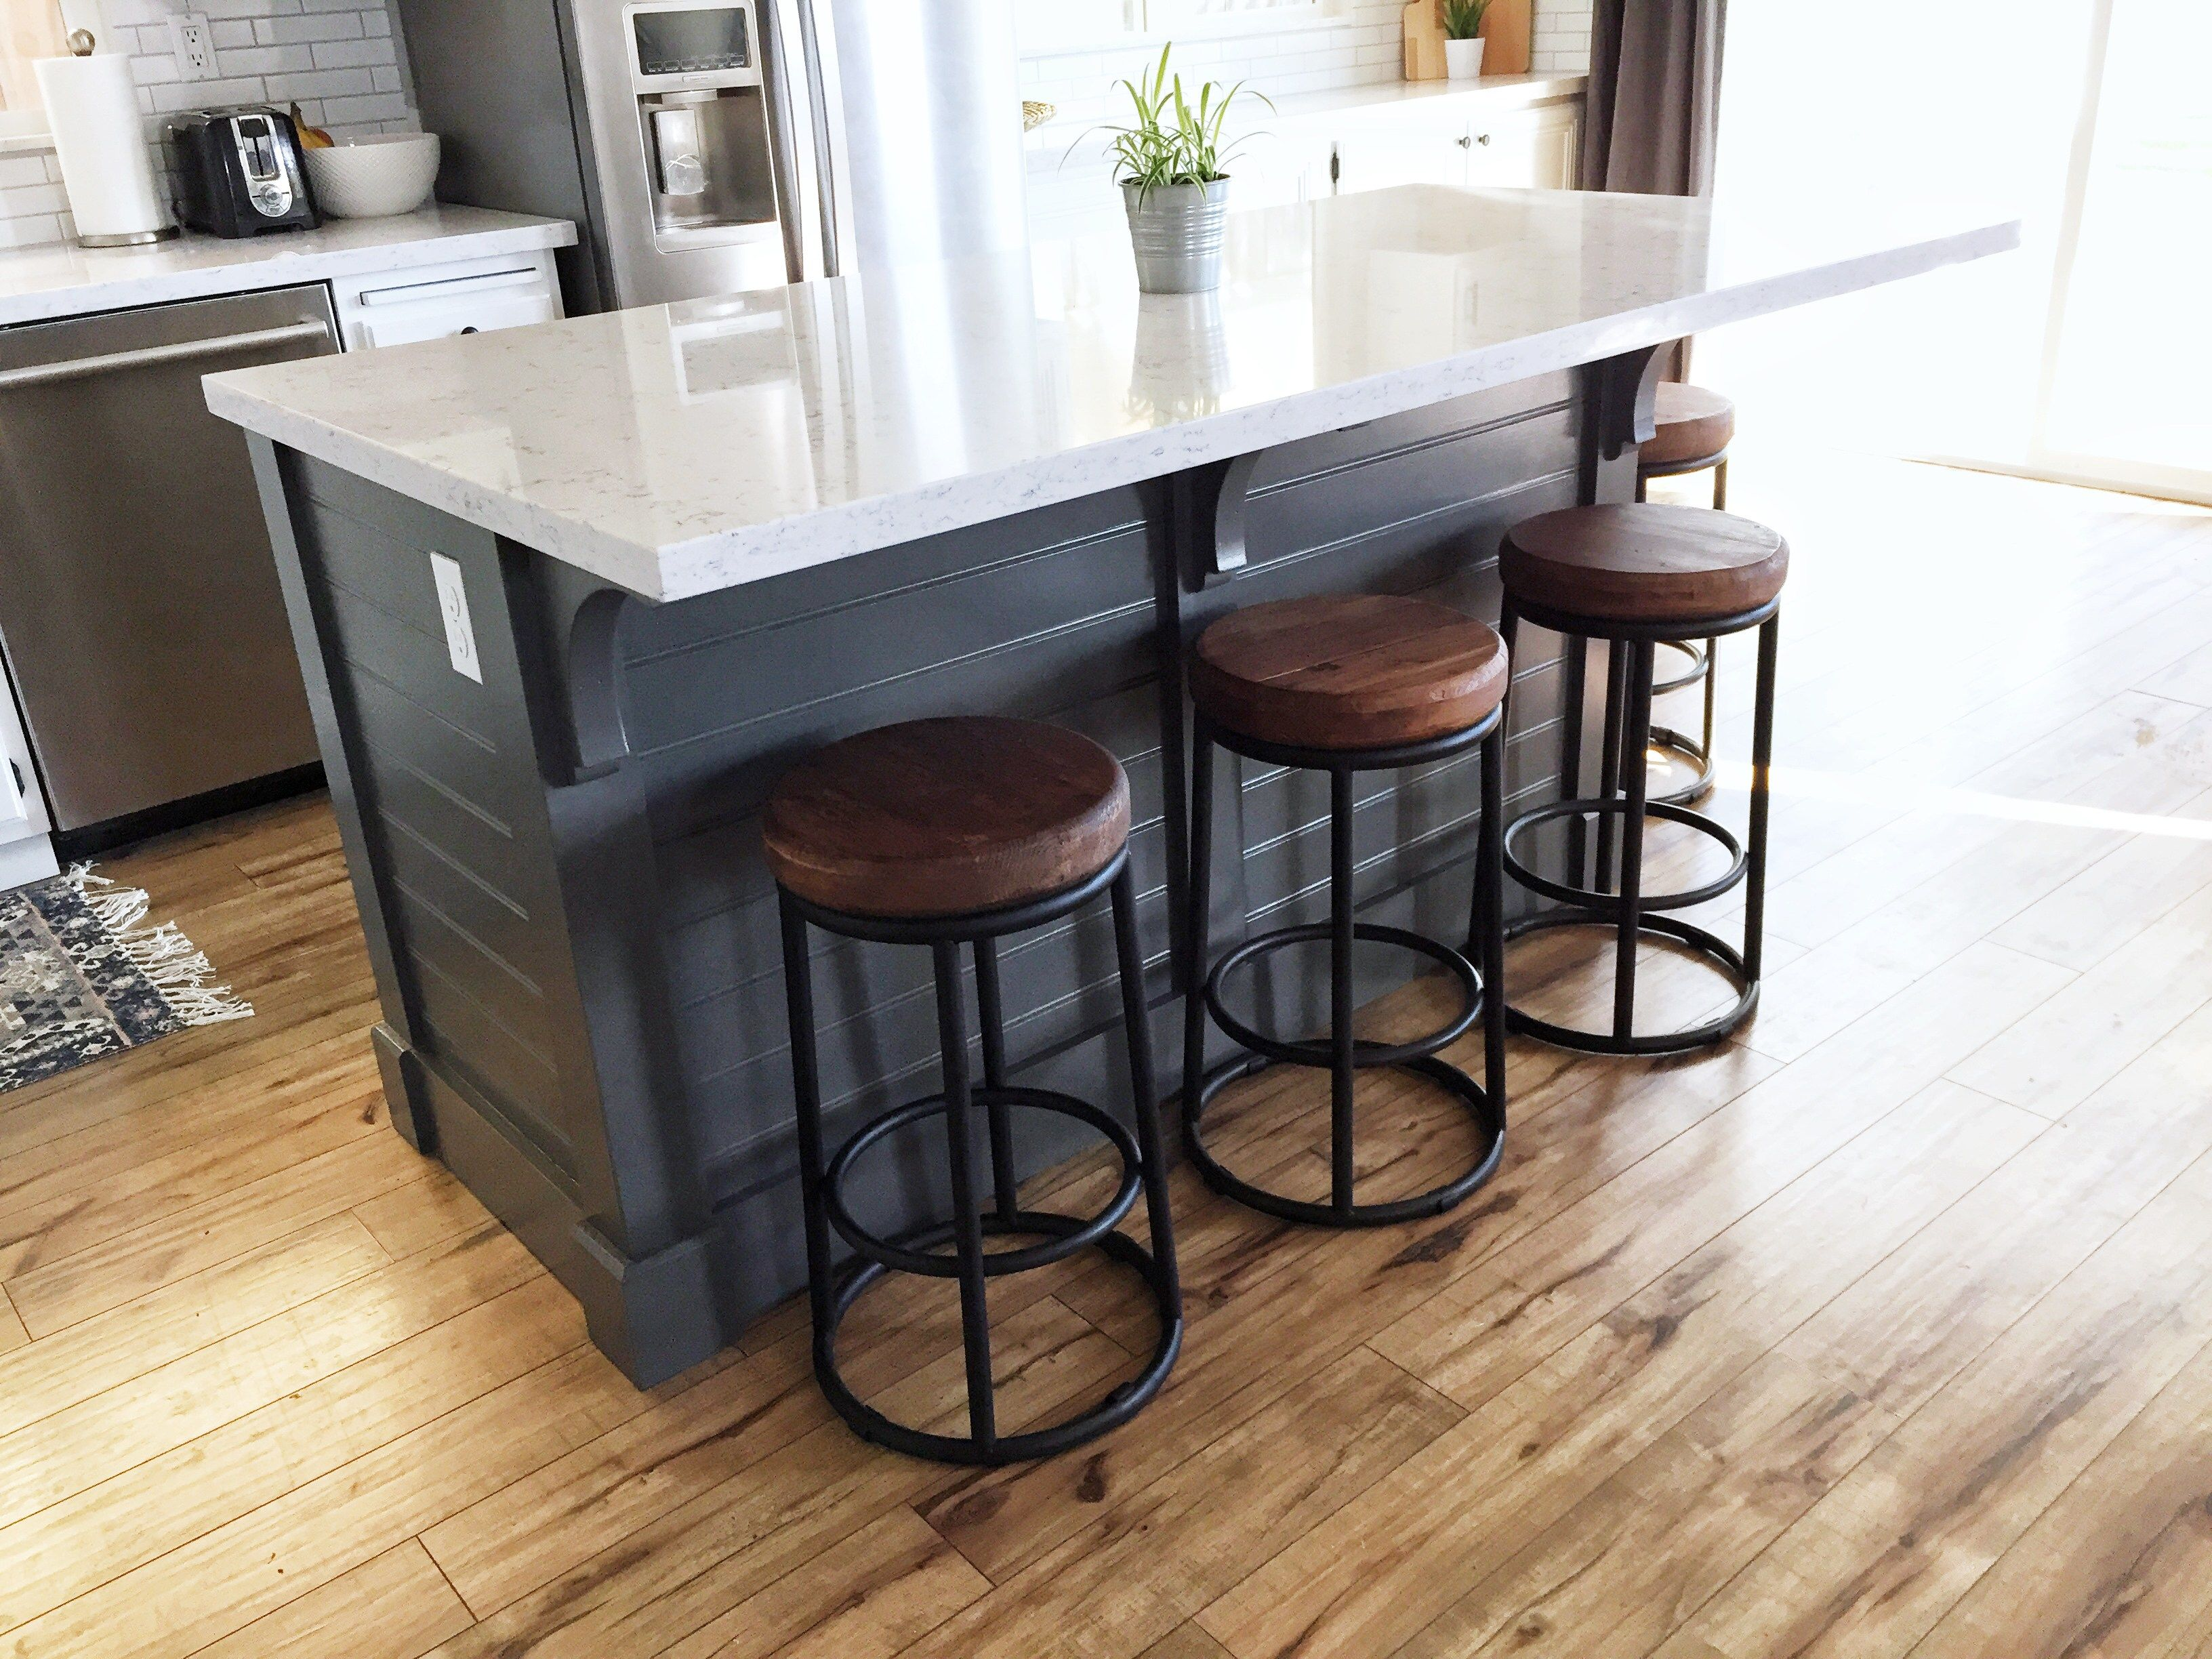 Kitchen island make it yourself save big pinterest kitchens if you or someone you know is planning a kitchen revamp anytime ever then this is a post you want solutioingenieria